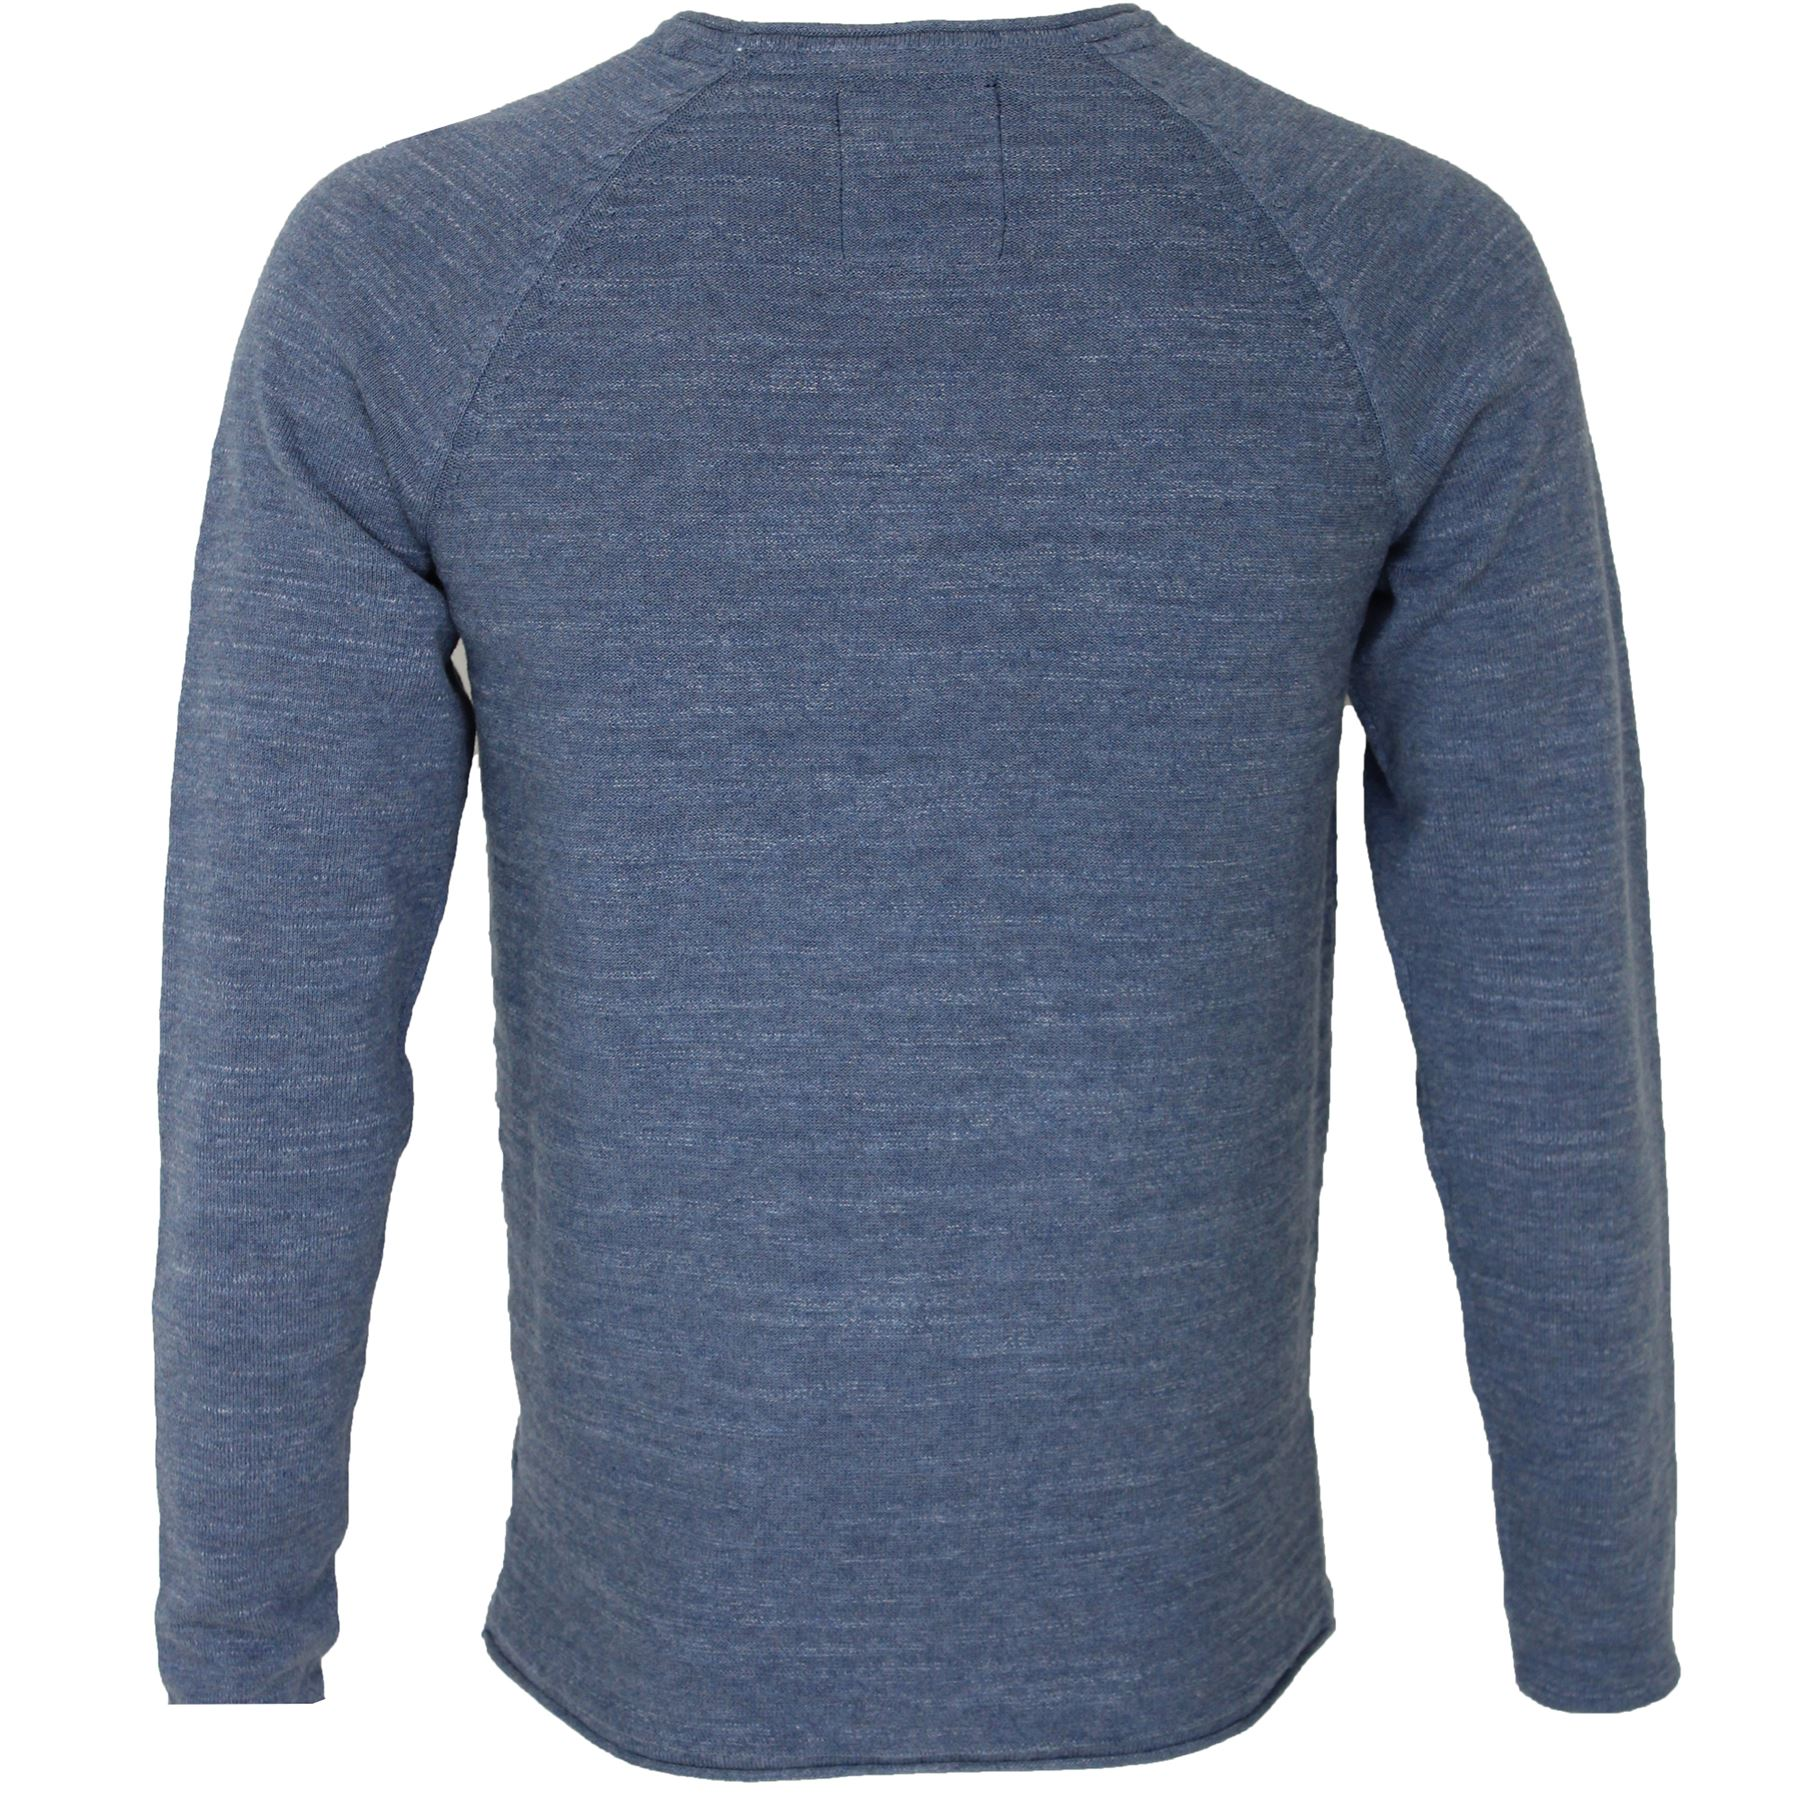 Men's Hoodies & Sweaters. Filters (1) 29 Results. Featured Highest Rated New Arrivals Sort More. Featured Highest Rated New Arrivals Lowest Price Highest Price Percent Off. close Filters. Ambassador Picks for Women's & Men's Fall Apparel. Shop Now. Need Help? Talk to our Gearheads 24/7 about your needs. Call: